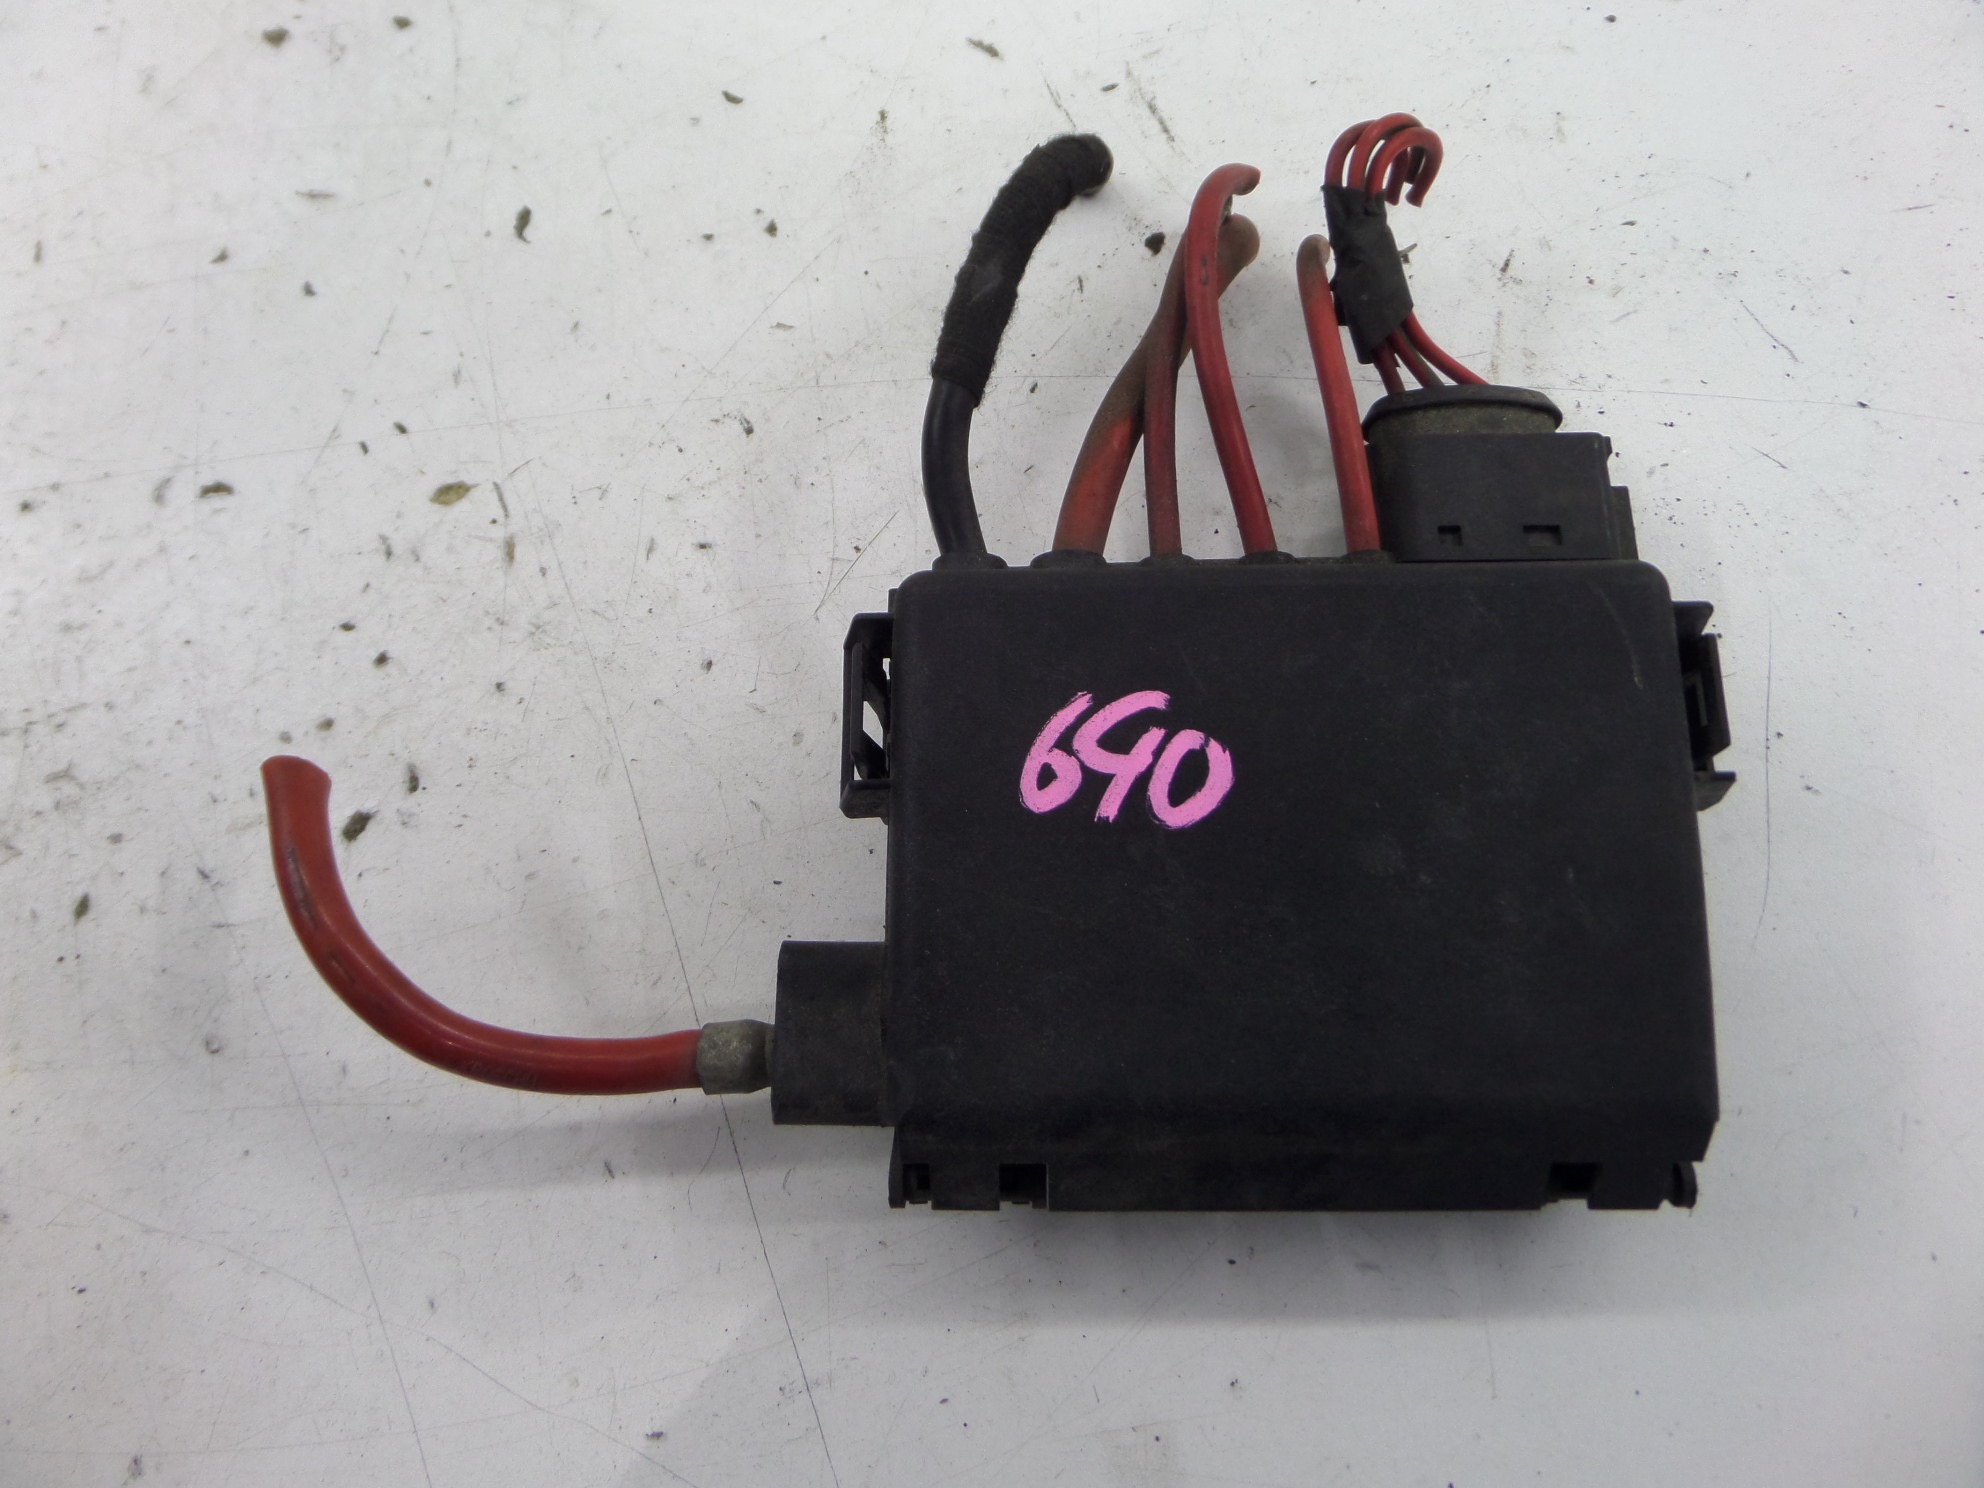 VW Golf GTI 20th 20AE Battery Top Fuse Box MK4 00-05 OEM 1J0 937 550 Jetta  | eBayeBay